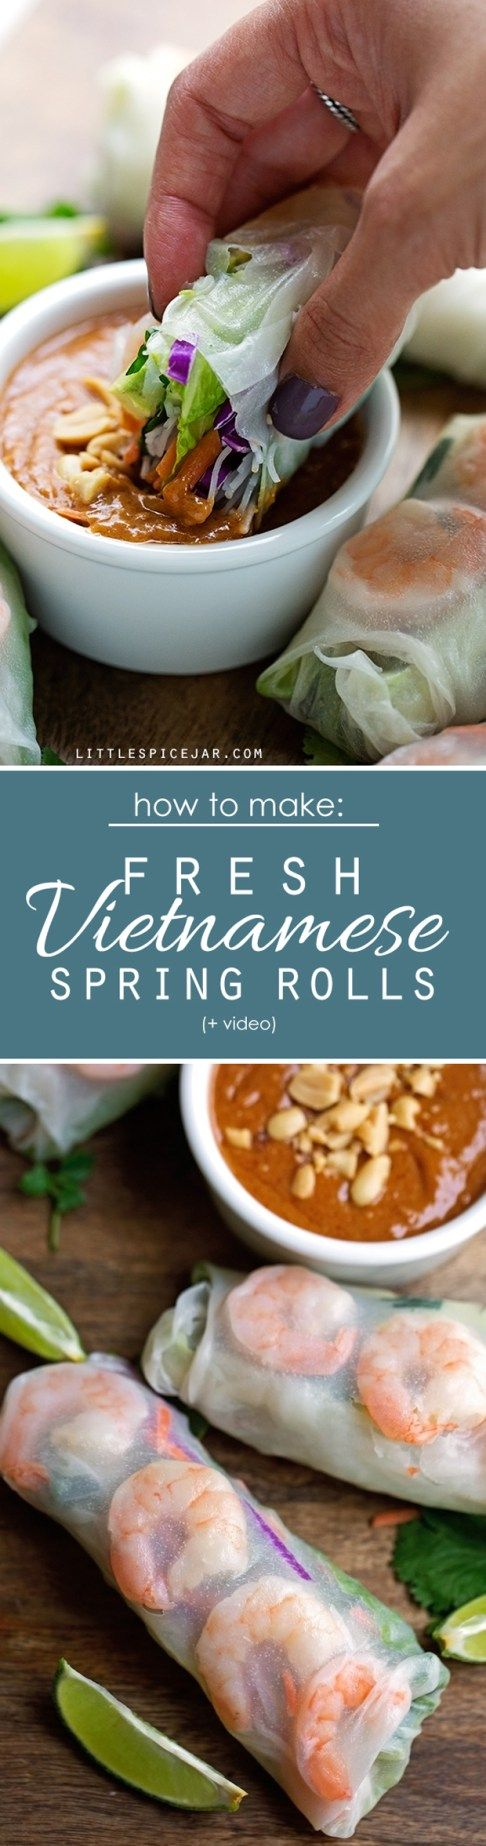 30 best Vietnamese foods images on Pinterest | Cooking food, Recipes ...